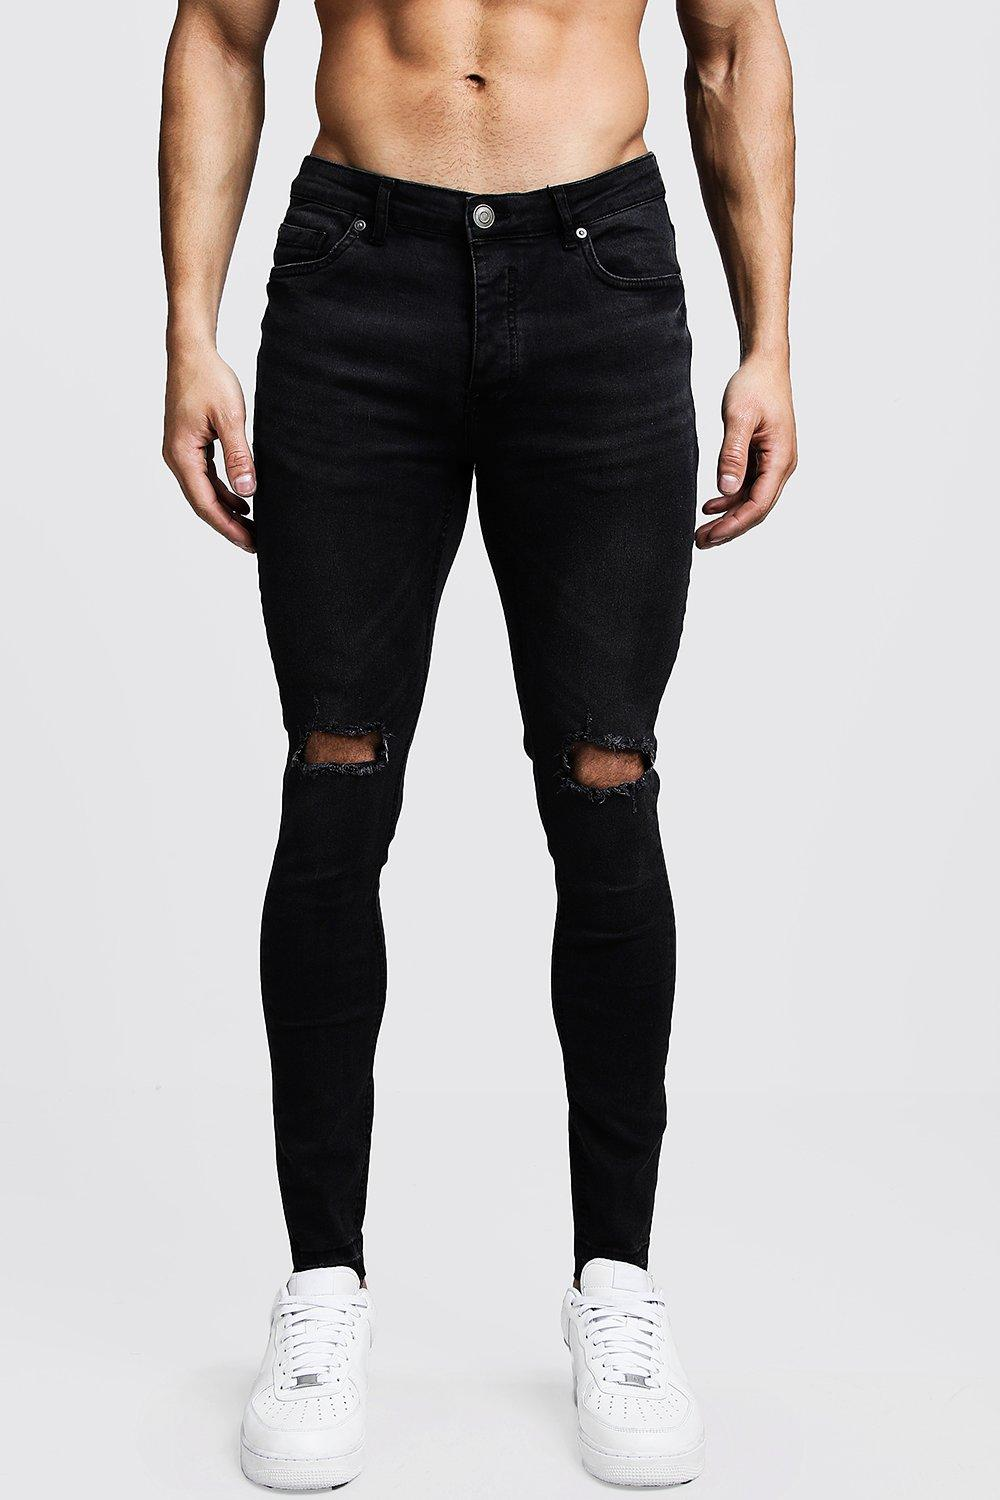 7123d626b3d Mens Black Black Skinny Fit Ripped Knee Jeans. Hover to zoom